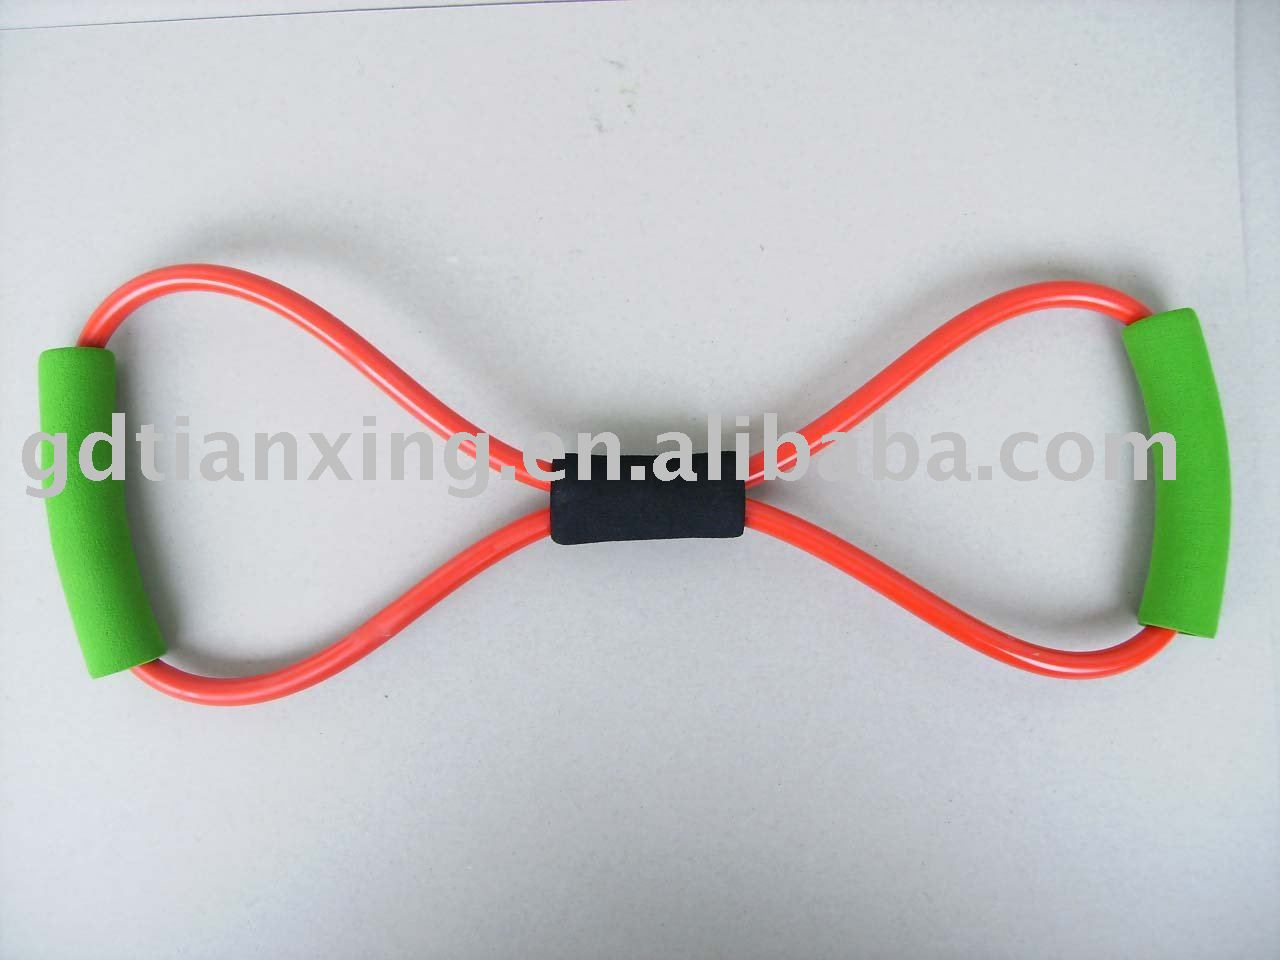 latex stretch tubing, fitness equirement